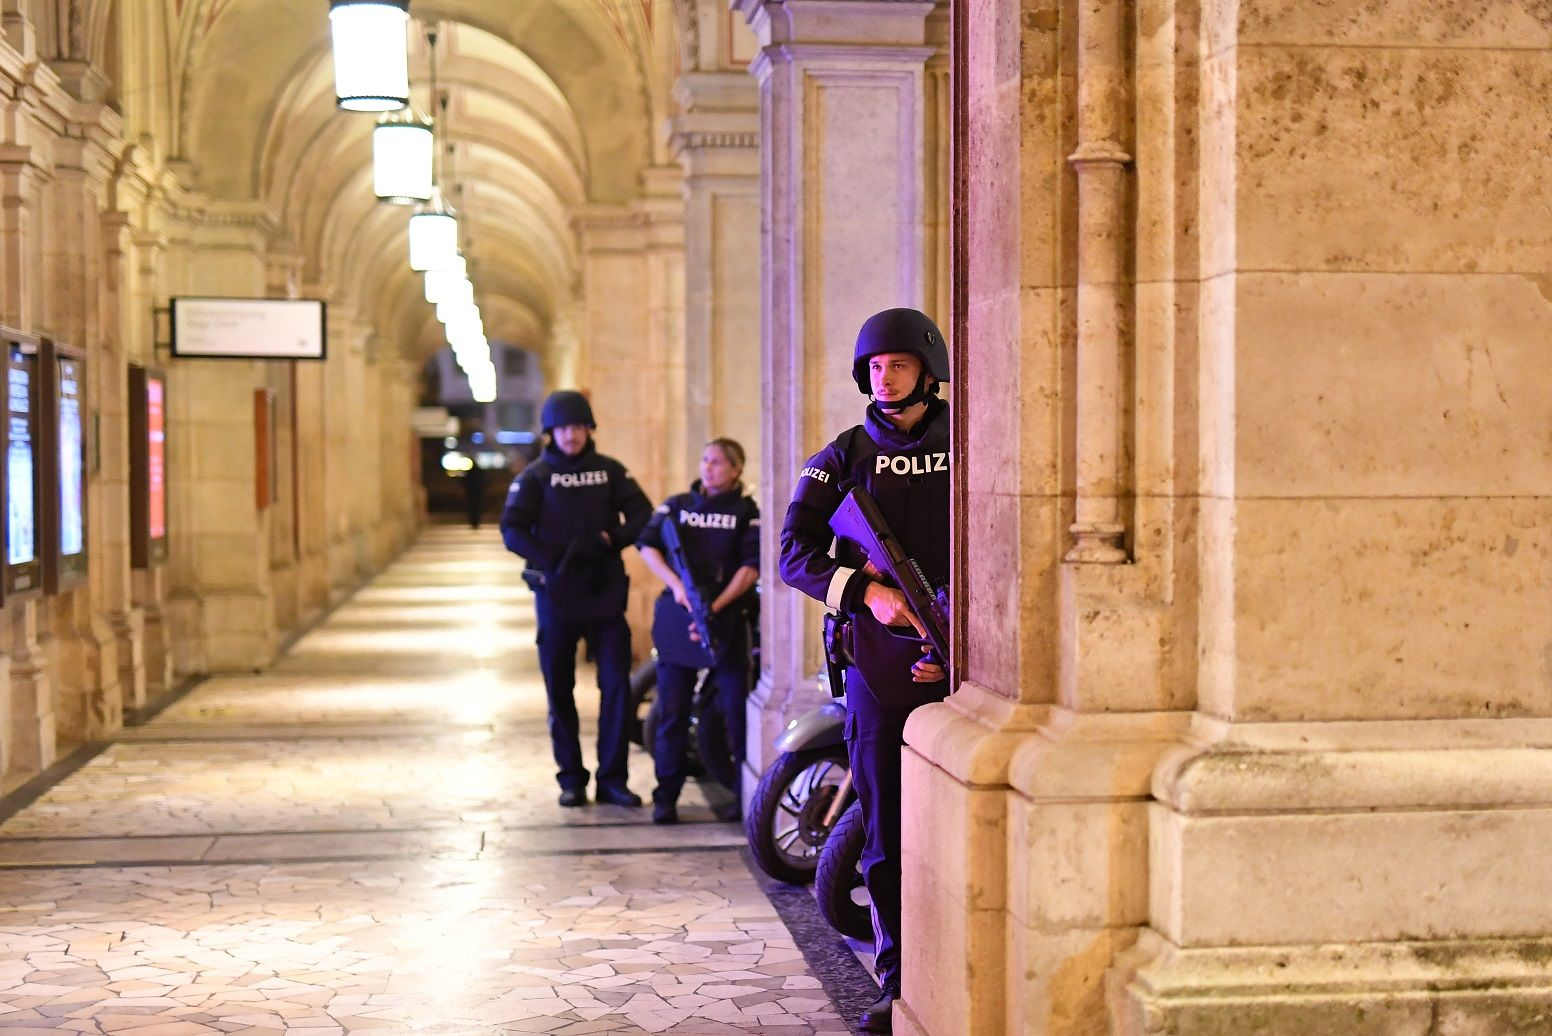 i24NEWS - Austria: At least one killed, several injured in suspected Vienna terror attack